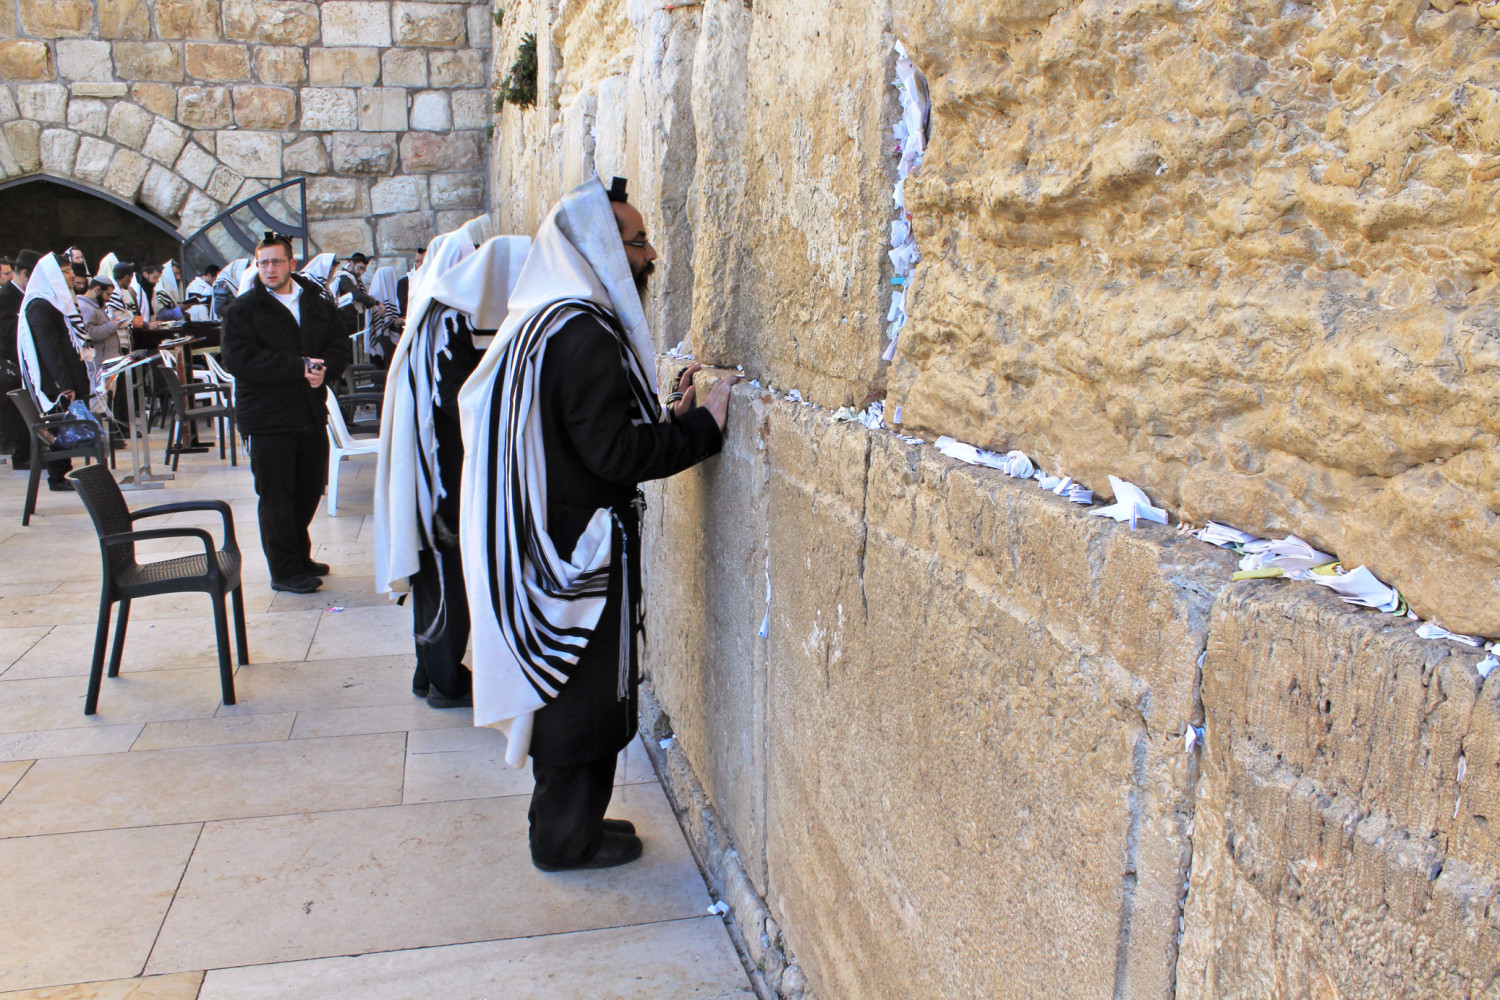 Jerusalem things to do see western wall